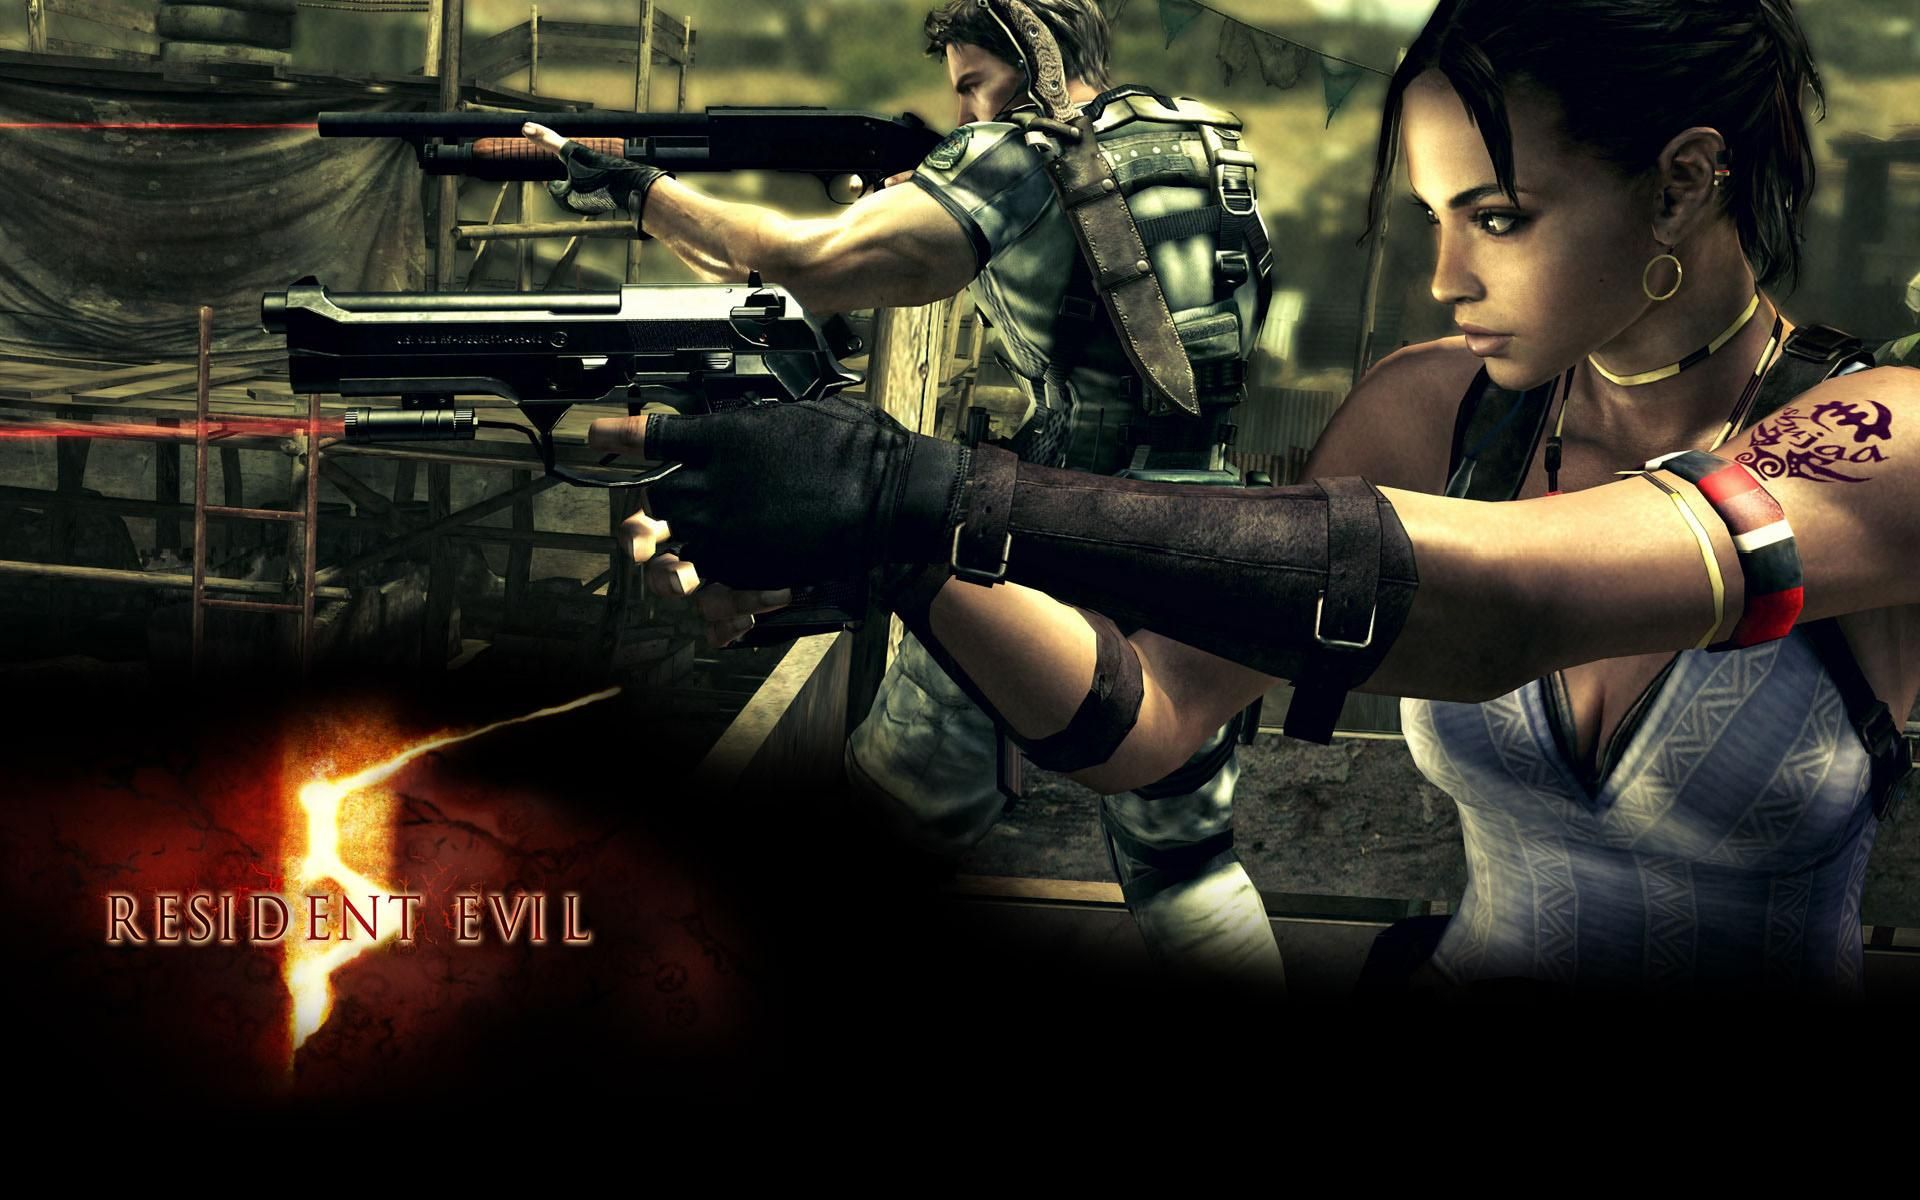 Resident Evil 5 3 Wallpapers Hd Wallpapers Resident Evil 5 Resident Evil Resident Evil Game